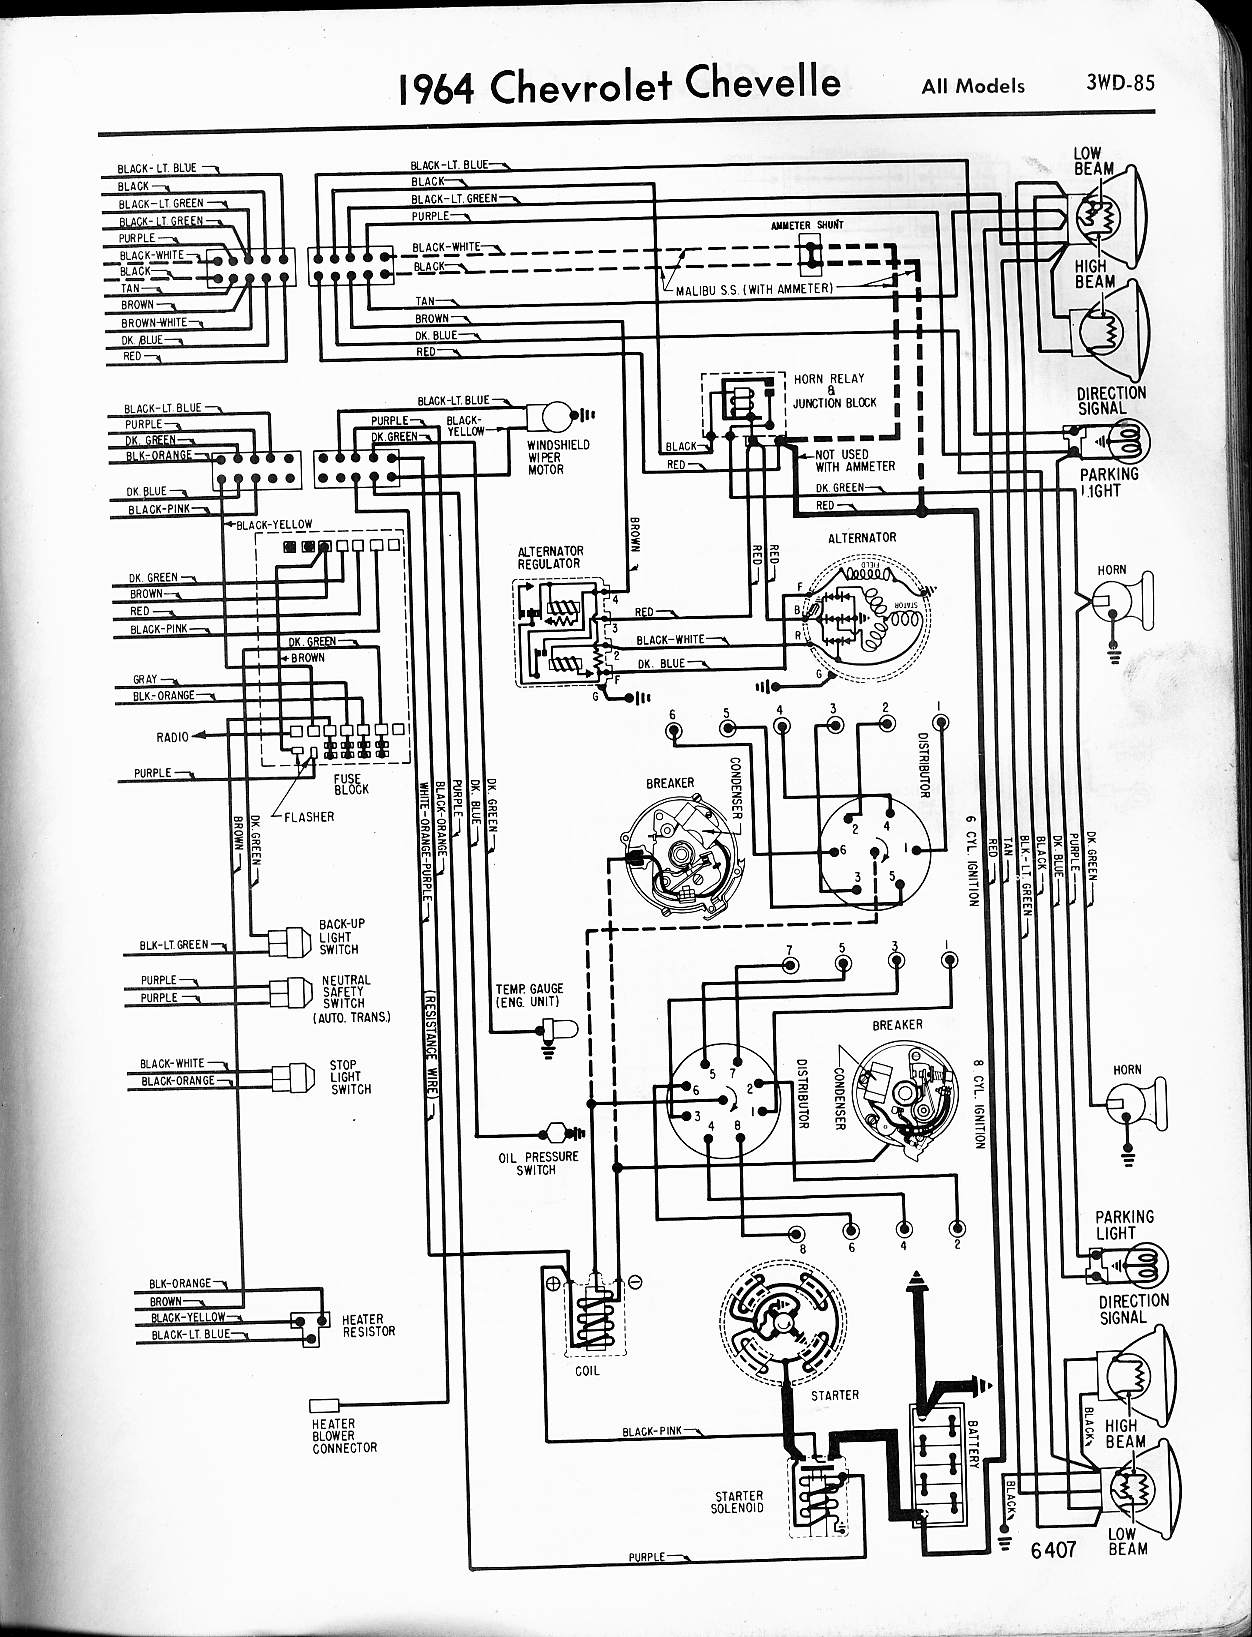 Chevy wiring schematics on 57 65 chevy wiring diagrams Chevy Solenoid Wiring 2002 Trailblazer Wiring Schematics